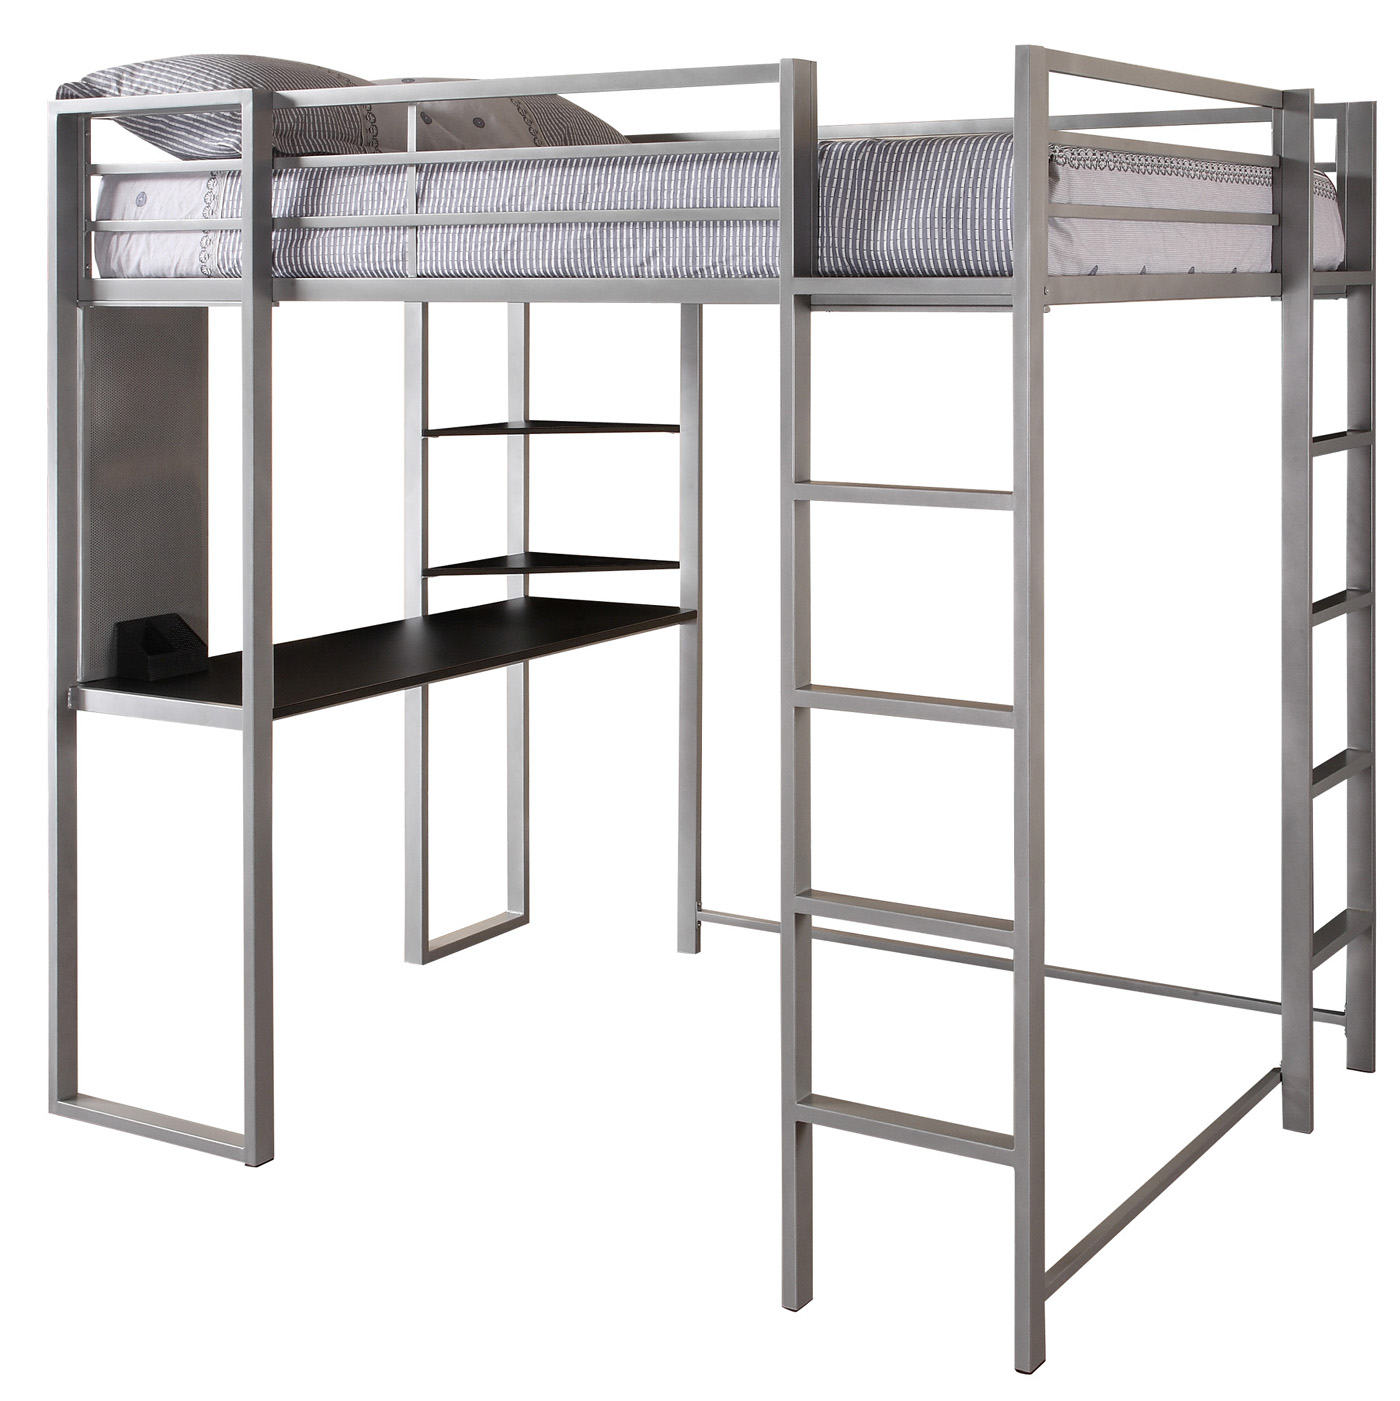 Abode Silver Full Size Loft bed with Black Desk and Shelves by